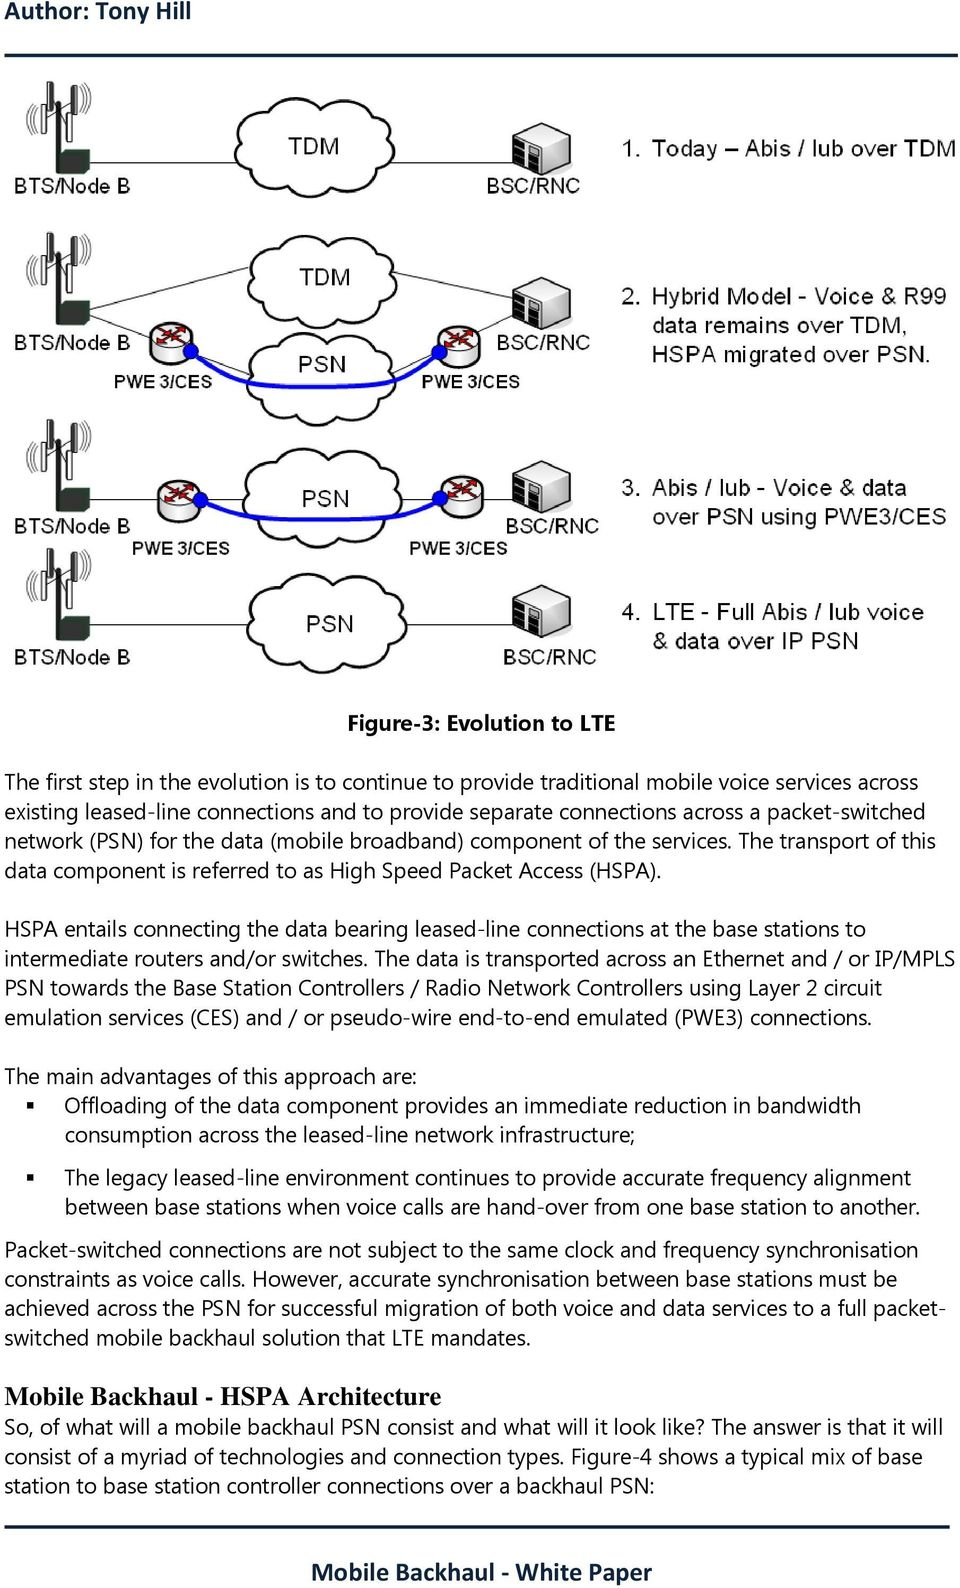 HSPA entails connecting the data bearing leased-line connections at the base stations to intermediate routers and/or switches.